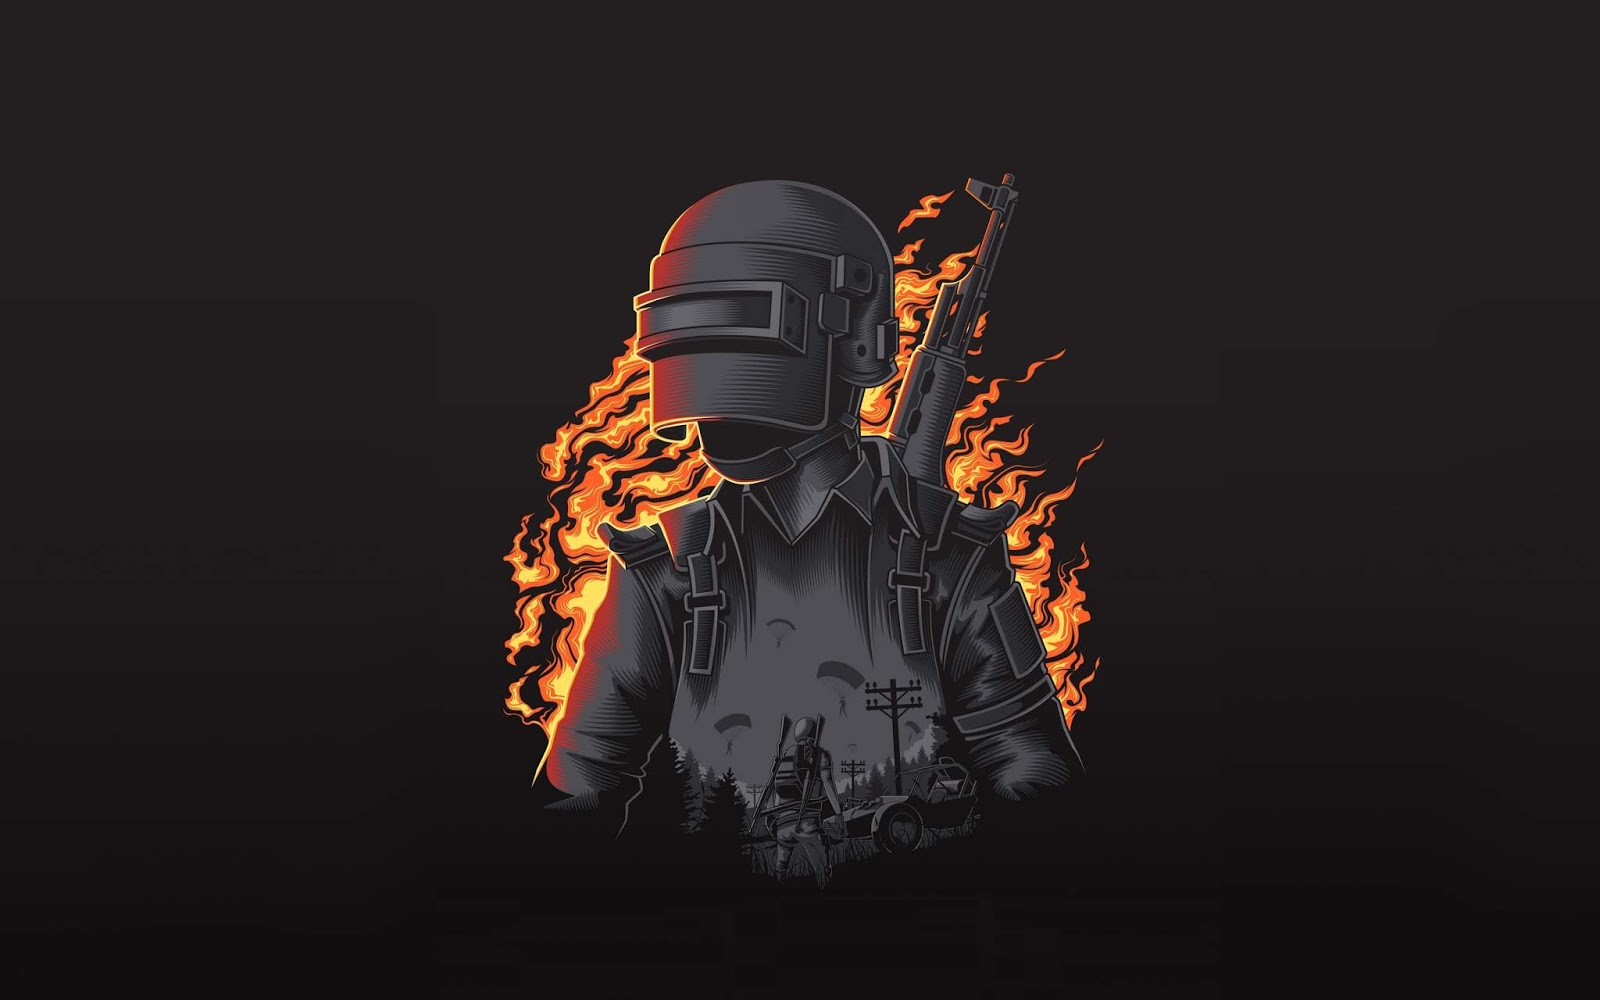 Pubg Wallpaper Themes: PUBG 4K ULTRA HD WALLPAPERS FOR PC AND MOBILE